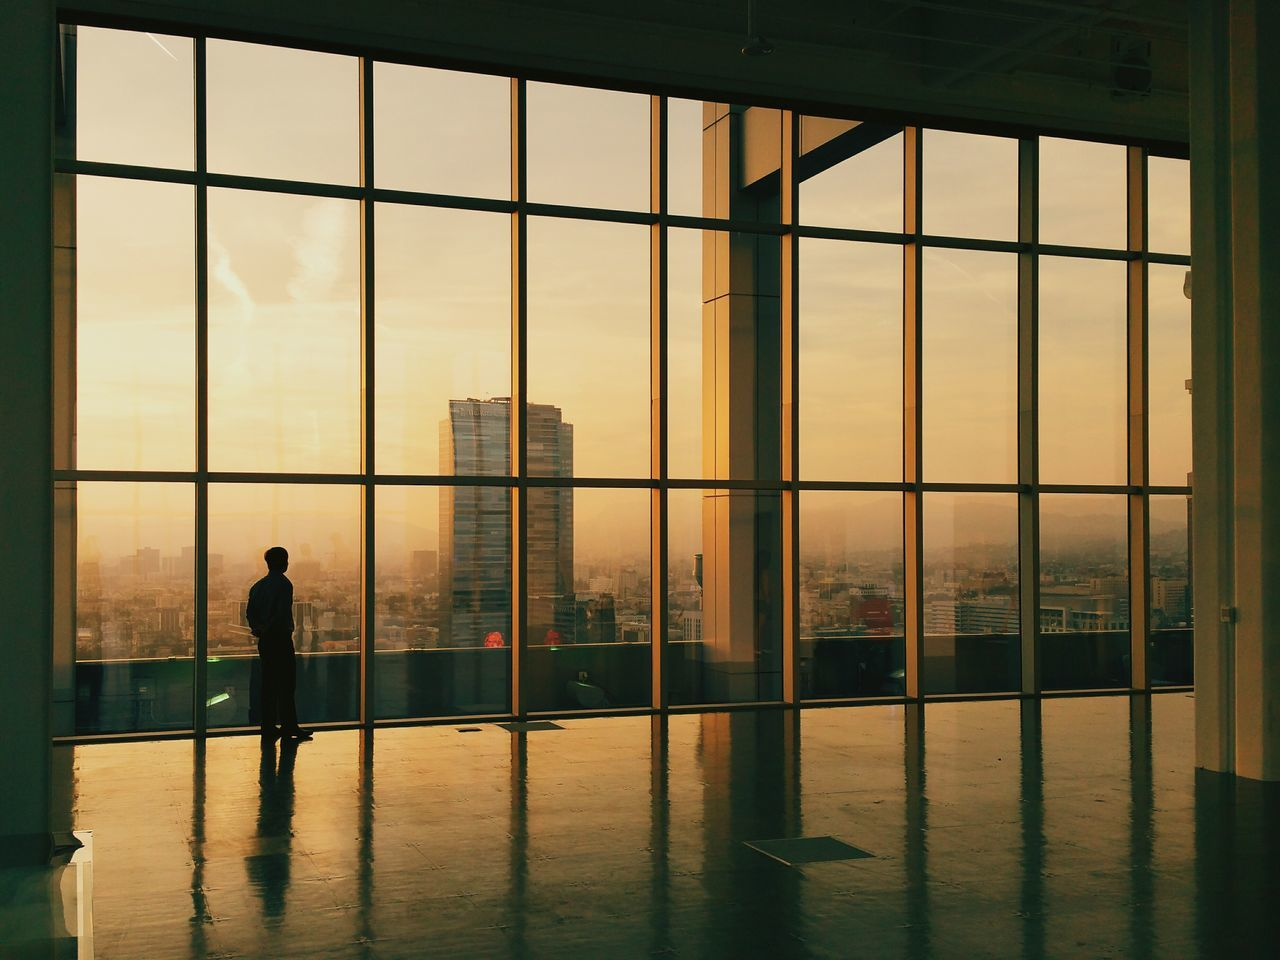 Rear View Of Silhouette Man Overlooking Cityscape